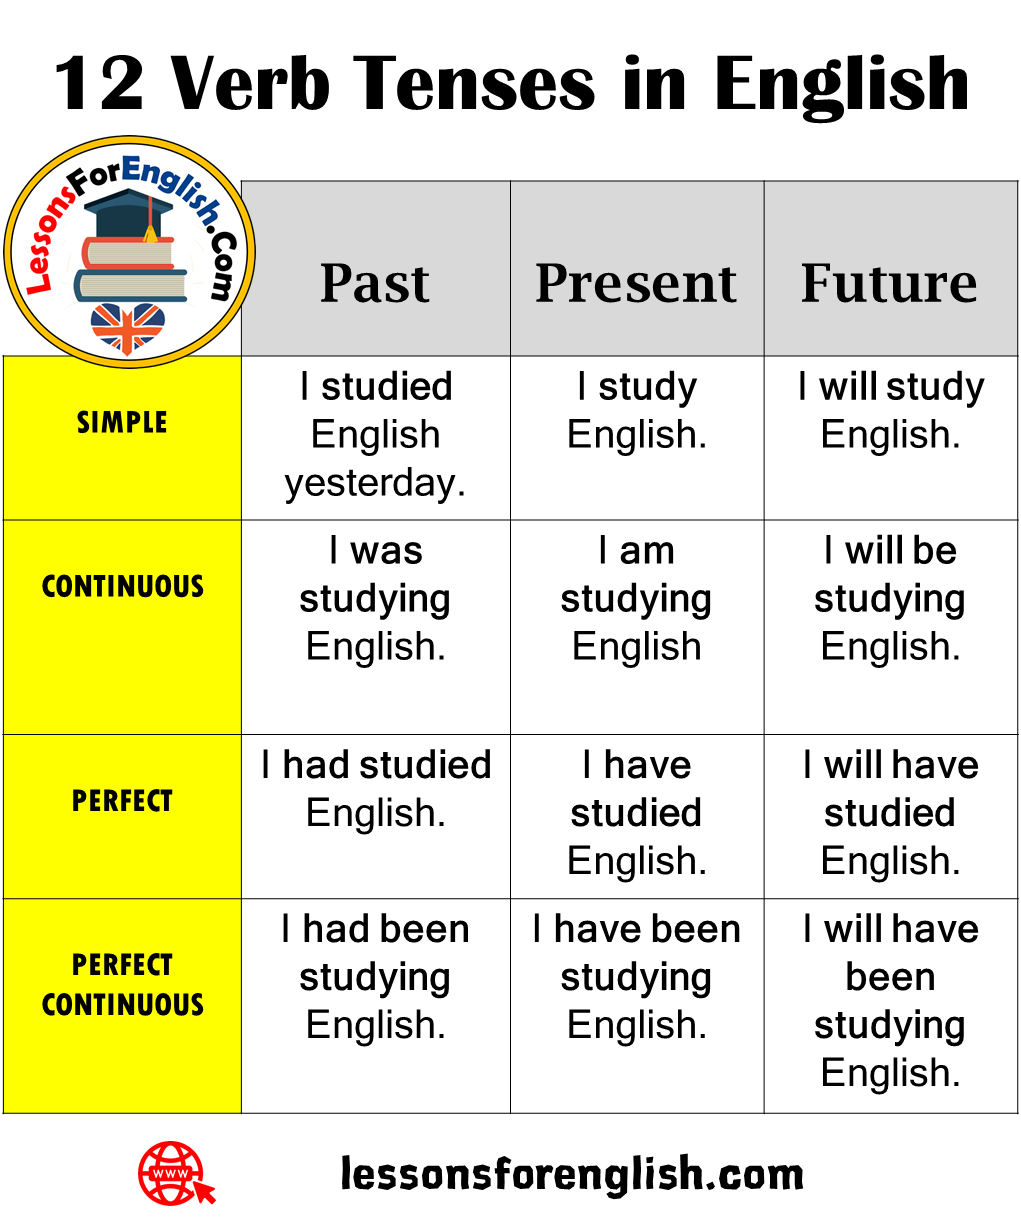 12 Verb Tenses In English Lessons For English